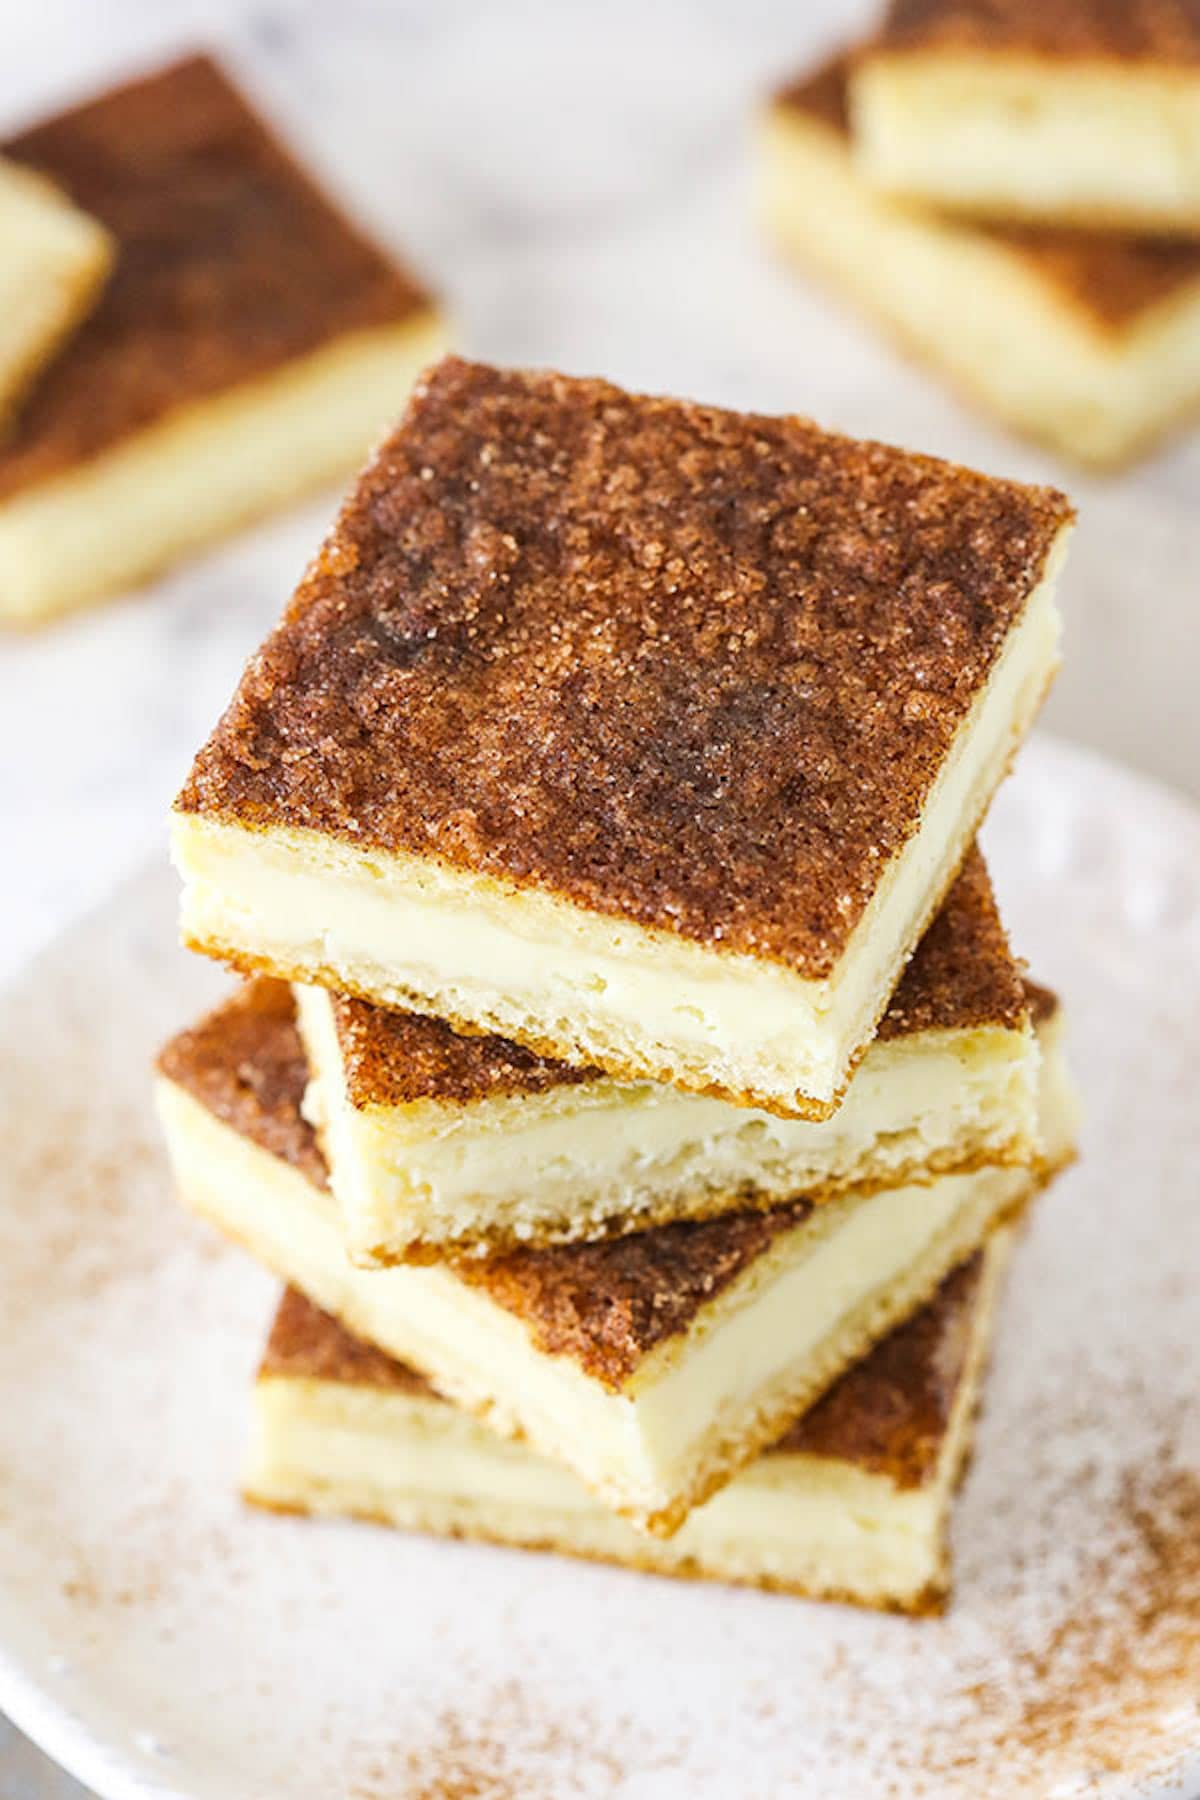 Four Cinnamon Sugar Cheesecake Bars Stacked on a White Plate